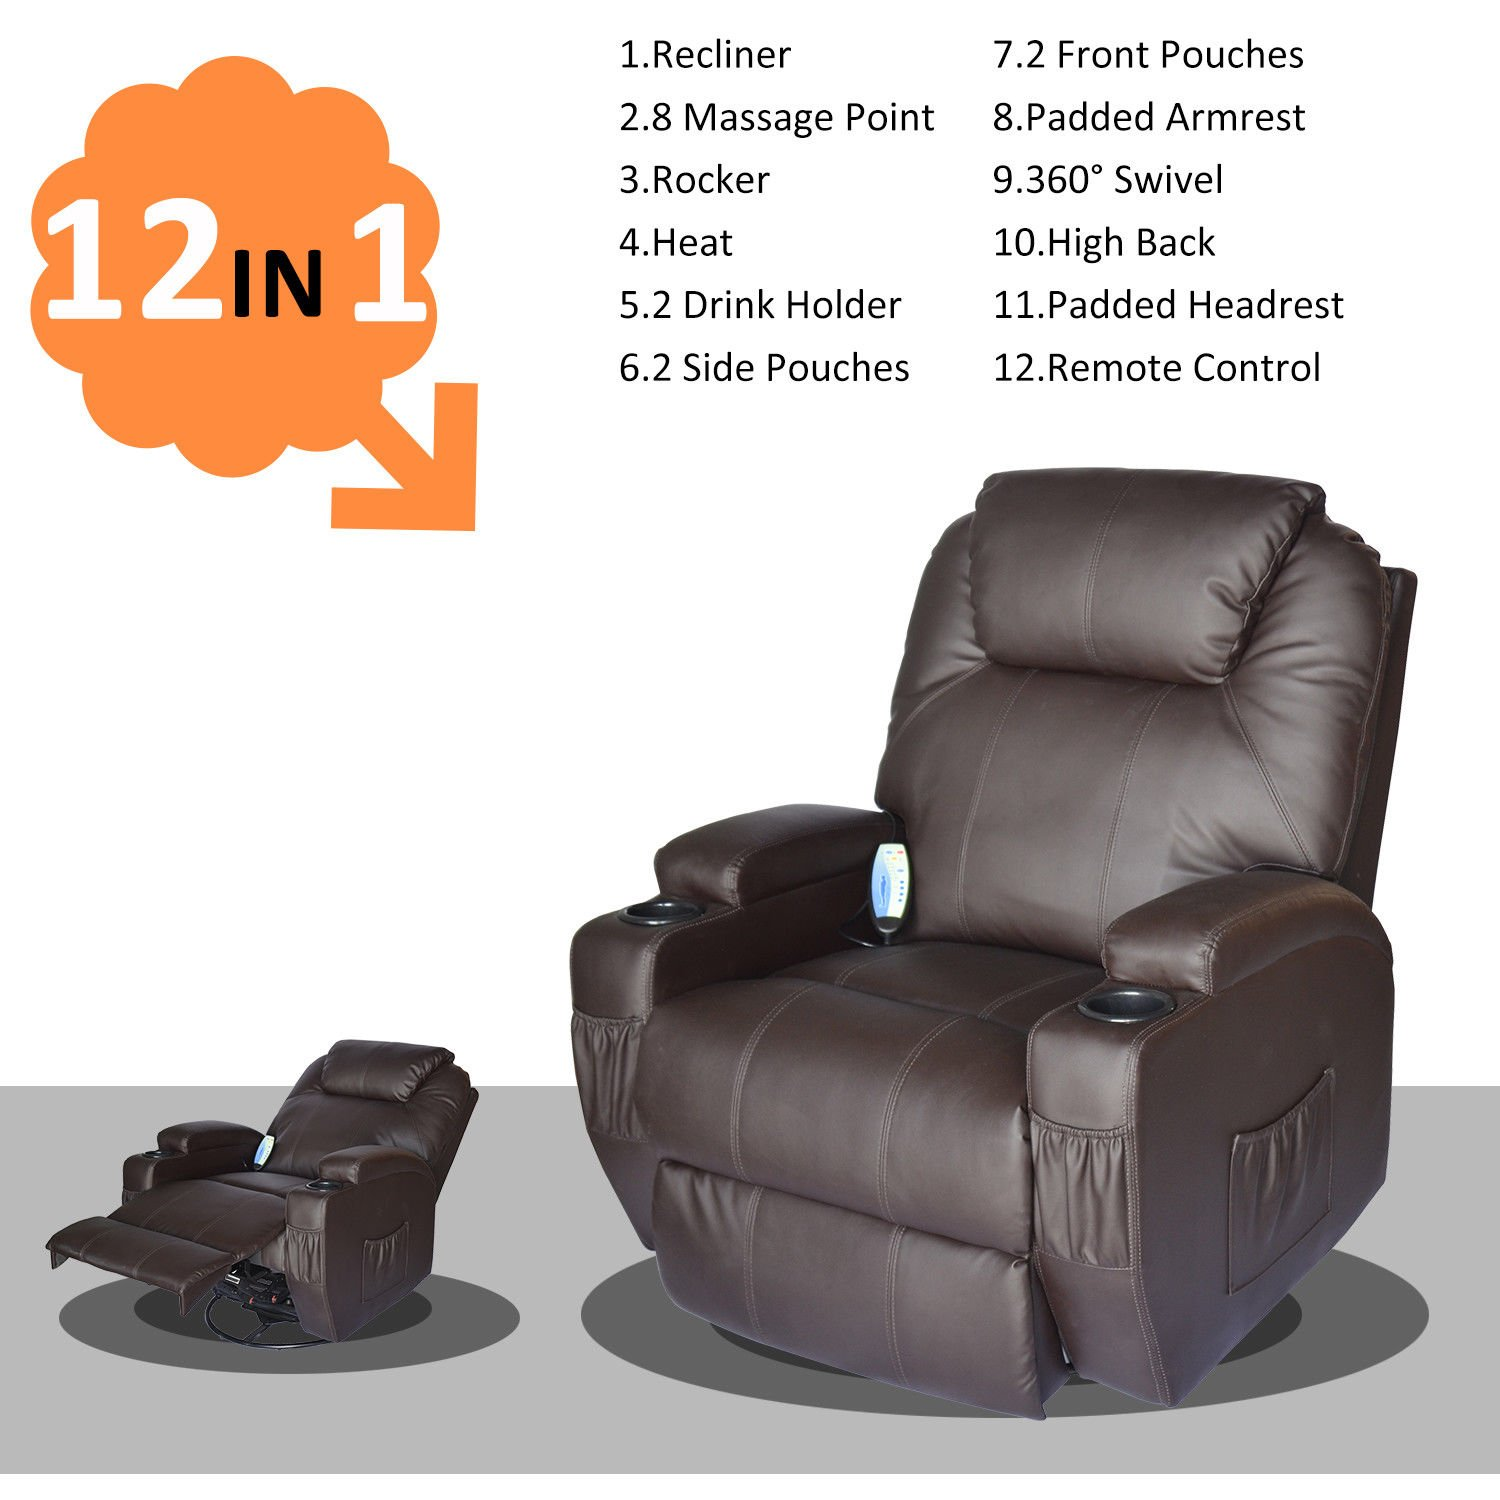 Amazon.com HomCom PU Leather Heated Vibrating 360 Degree Swivel Massage Recliner Chair with Remote - Brown Kitchen u0026 Dining  sc 1 st  Amazon.com & Amazon.com: HomCom PU Leather Heated Vibrating 360 Degree Swivel ... islam-shia.org